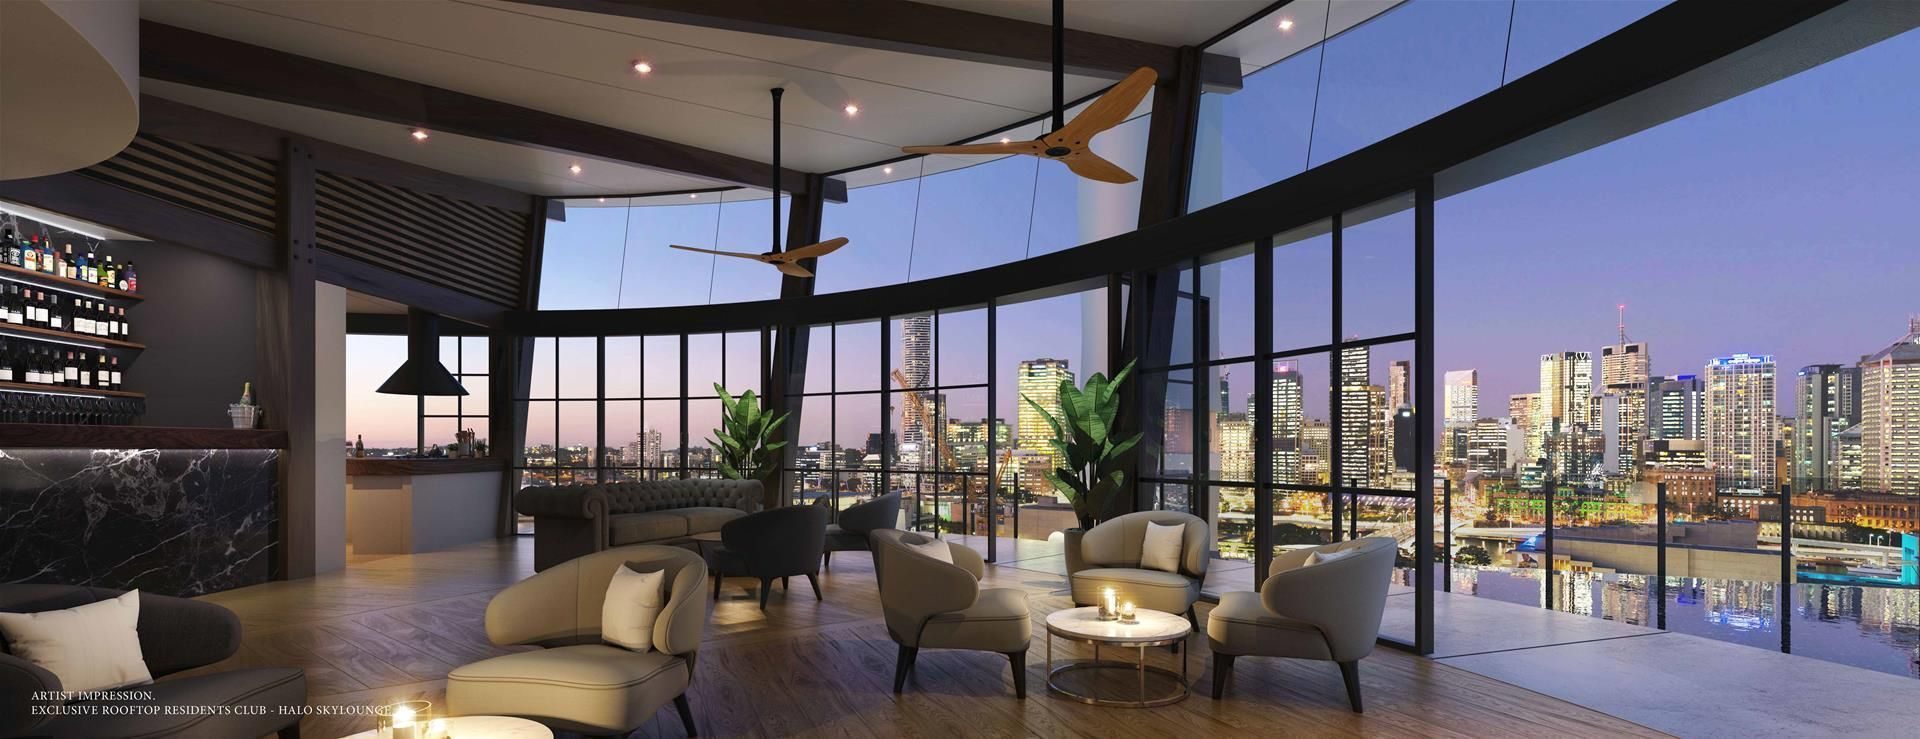 South Brisbane – Resort Style Living in the City